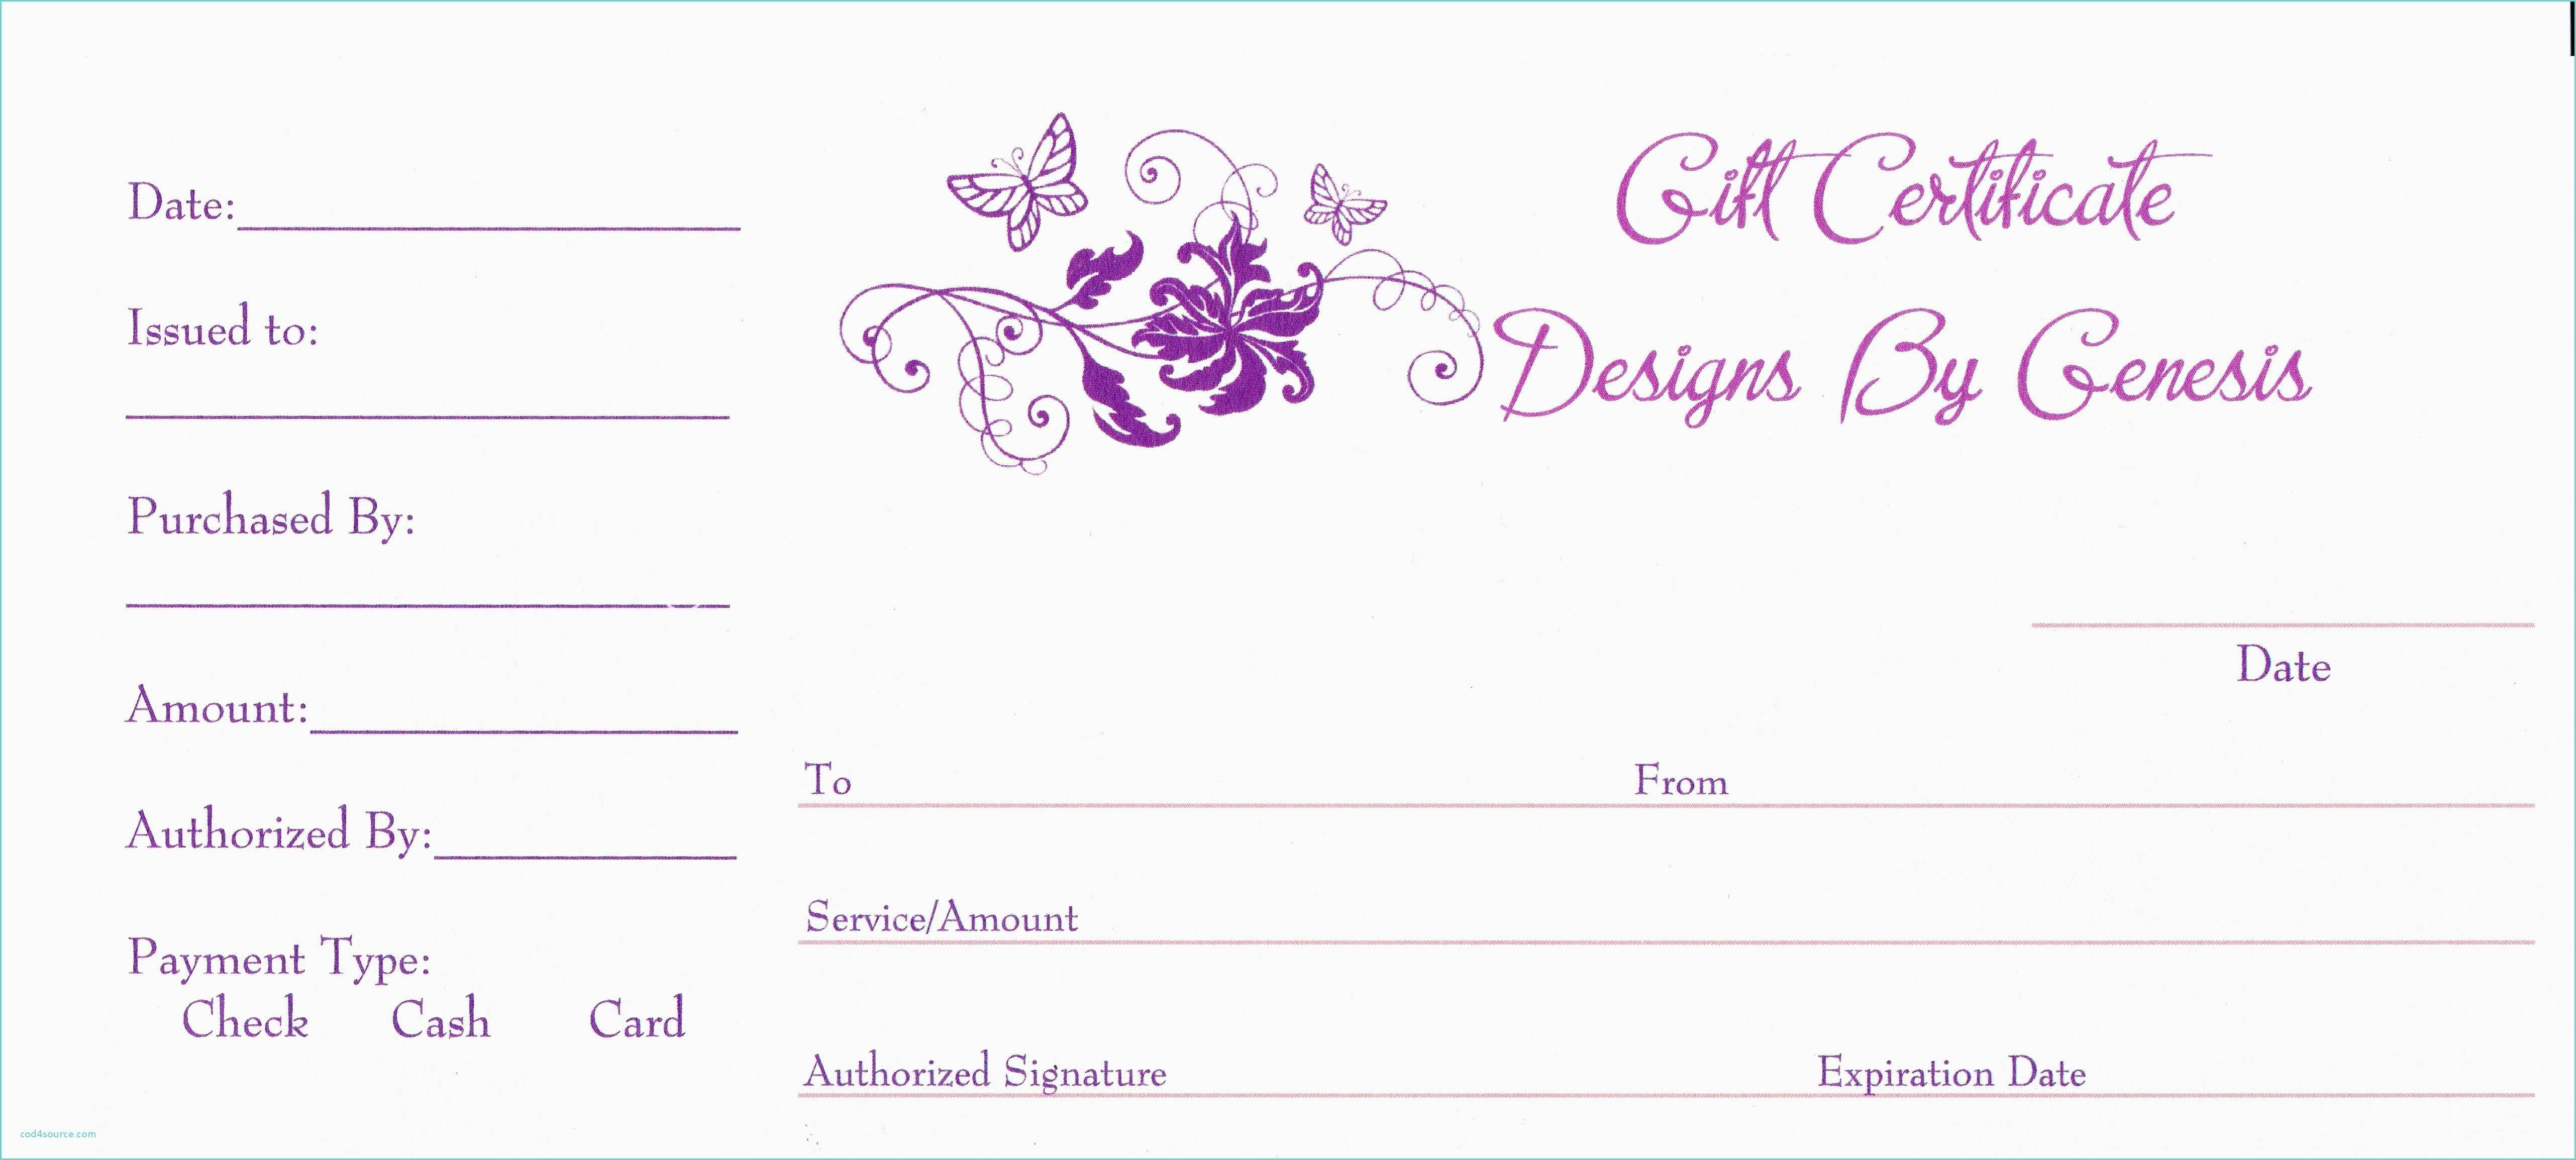 Print Your Own Valentines Free Printable Massage Gift Certificate - Free Printable Gift Certificate Templates For Massage